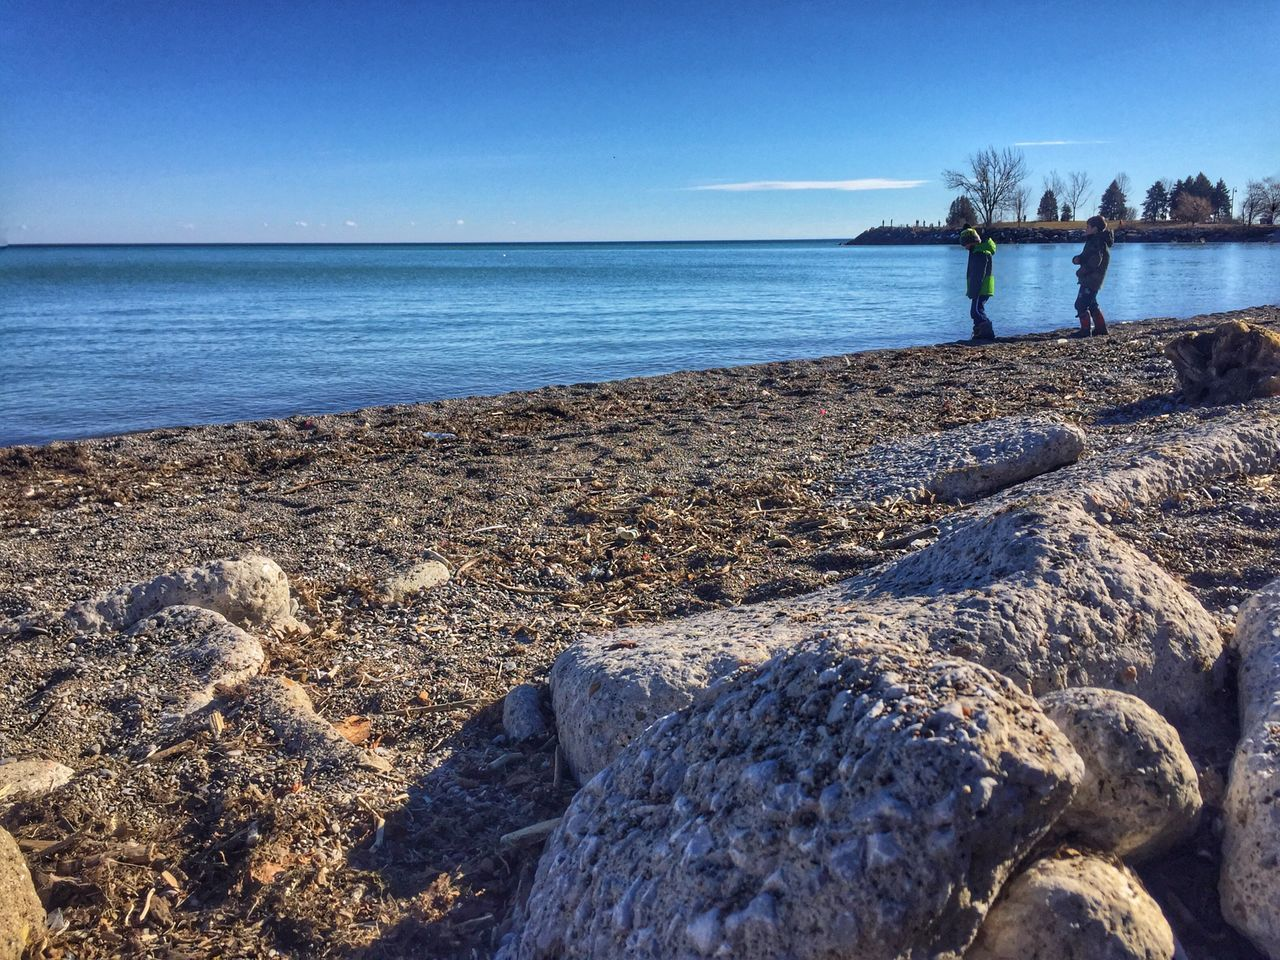 The warm days of winter. Sea Water Horizon Over Water Beach Nature Beauty In Nature Tranquility Scenics Tranquil Scene Clear Sky Rock - Object Sky Outdoors Sand Day No People Toronto Lake Ontario Scarborough Bluffs